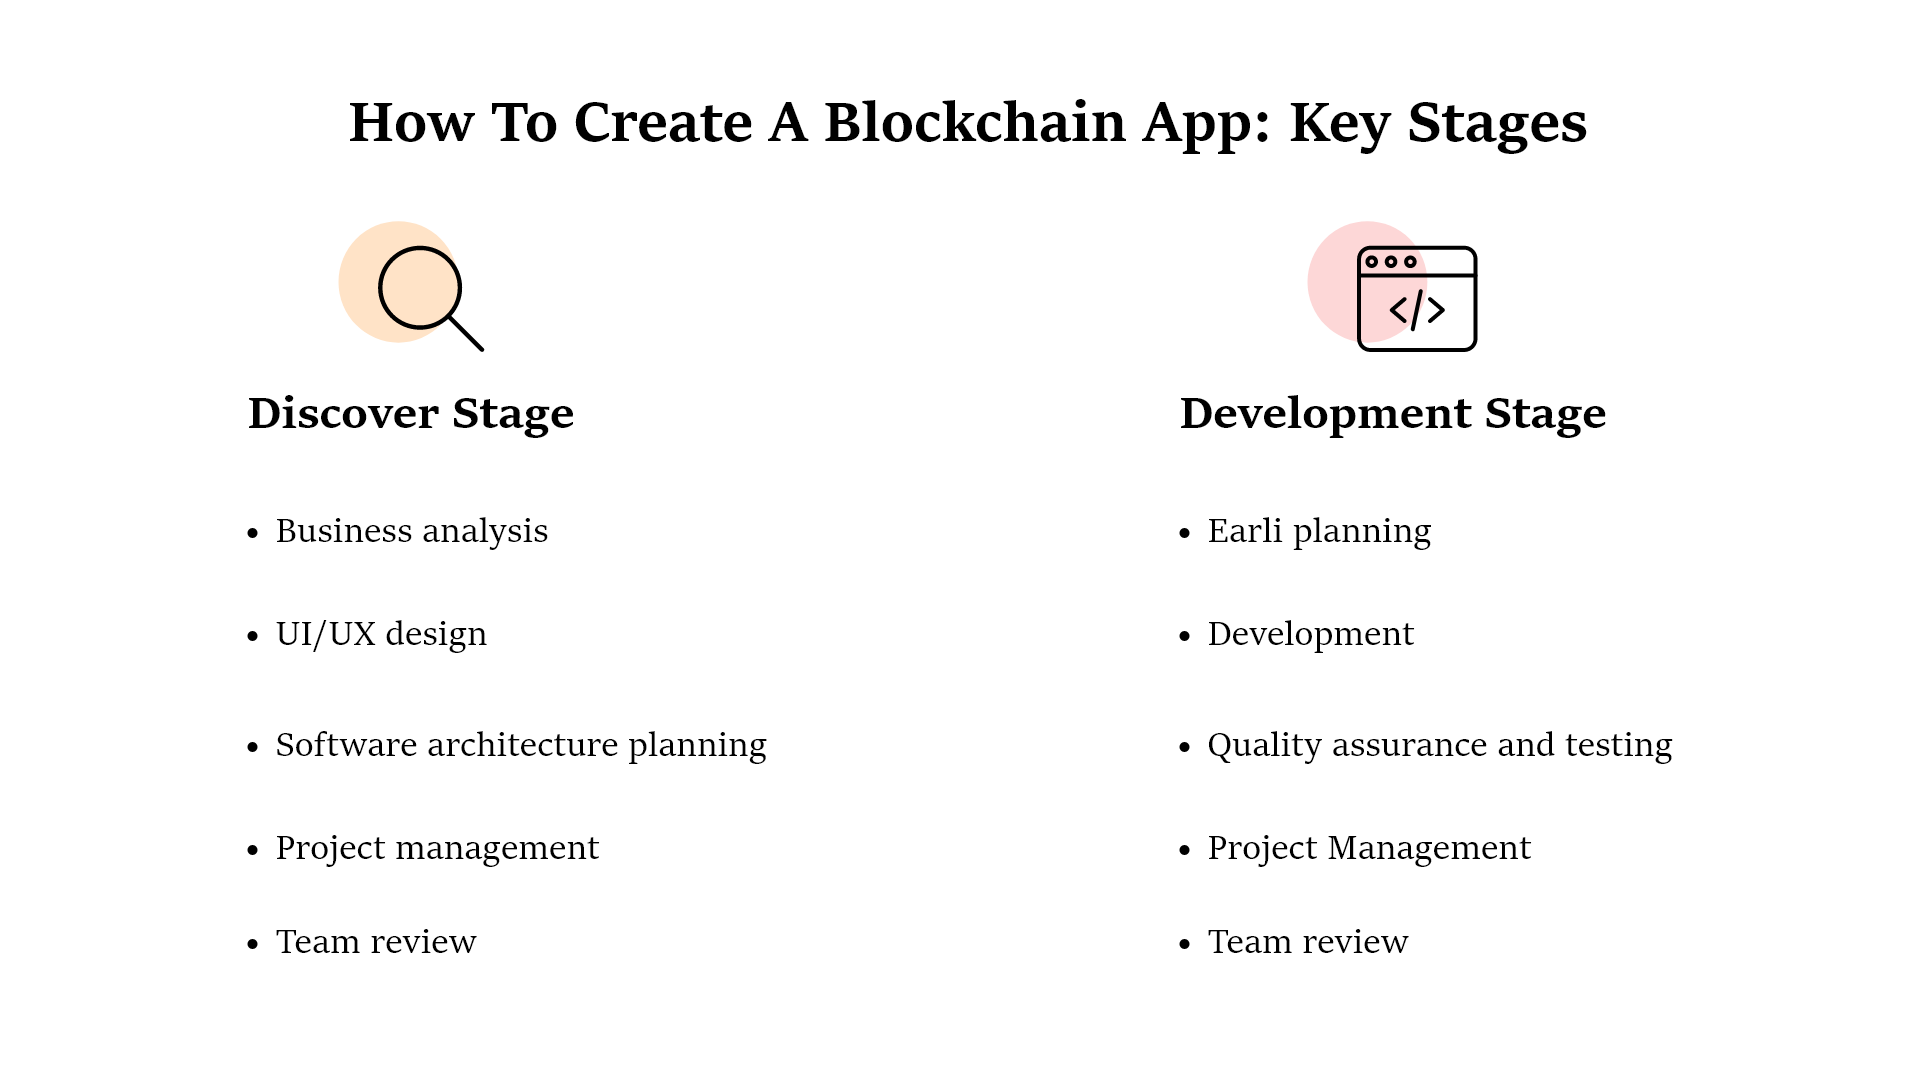 How to Create a Blockchain App: Key Stages